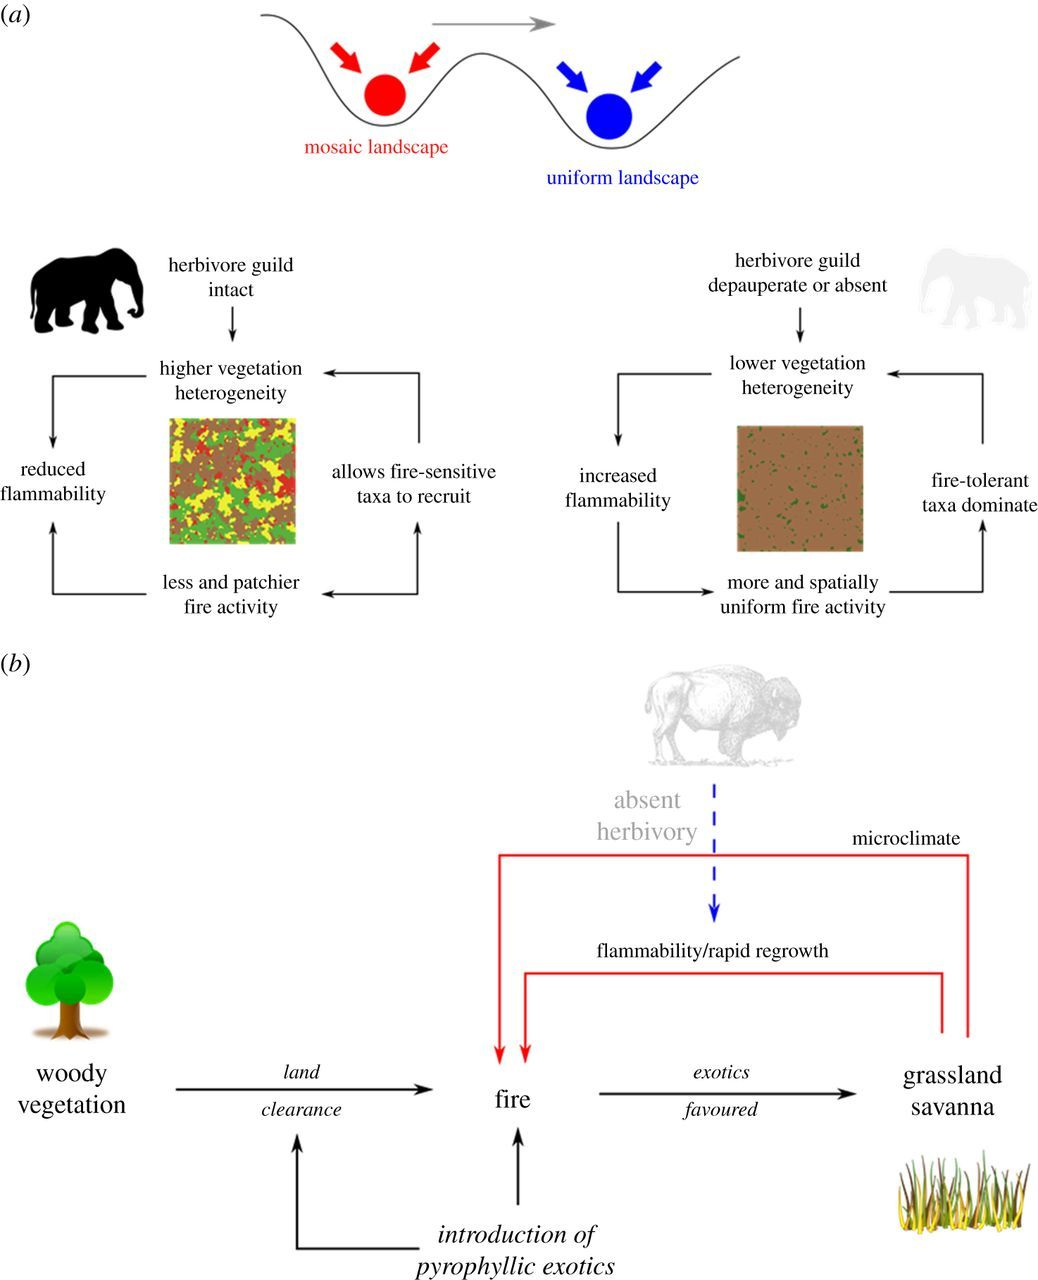 Pyrodiversity is the coupling of biodiversity and fire regimes in